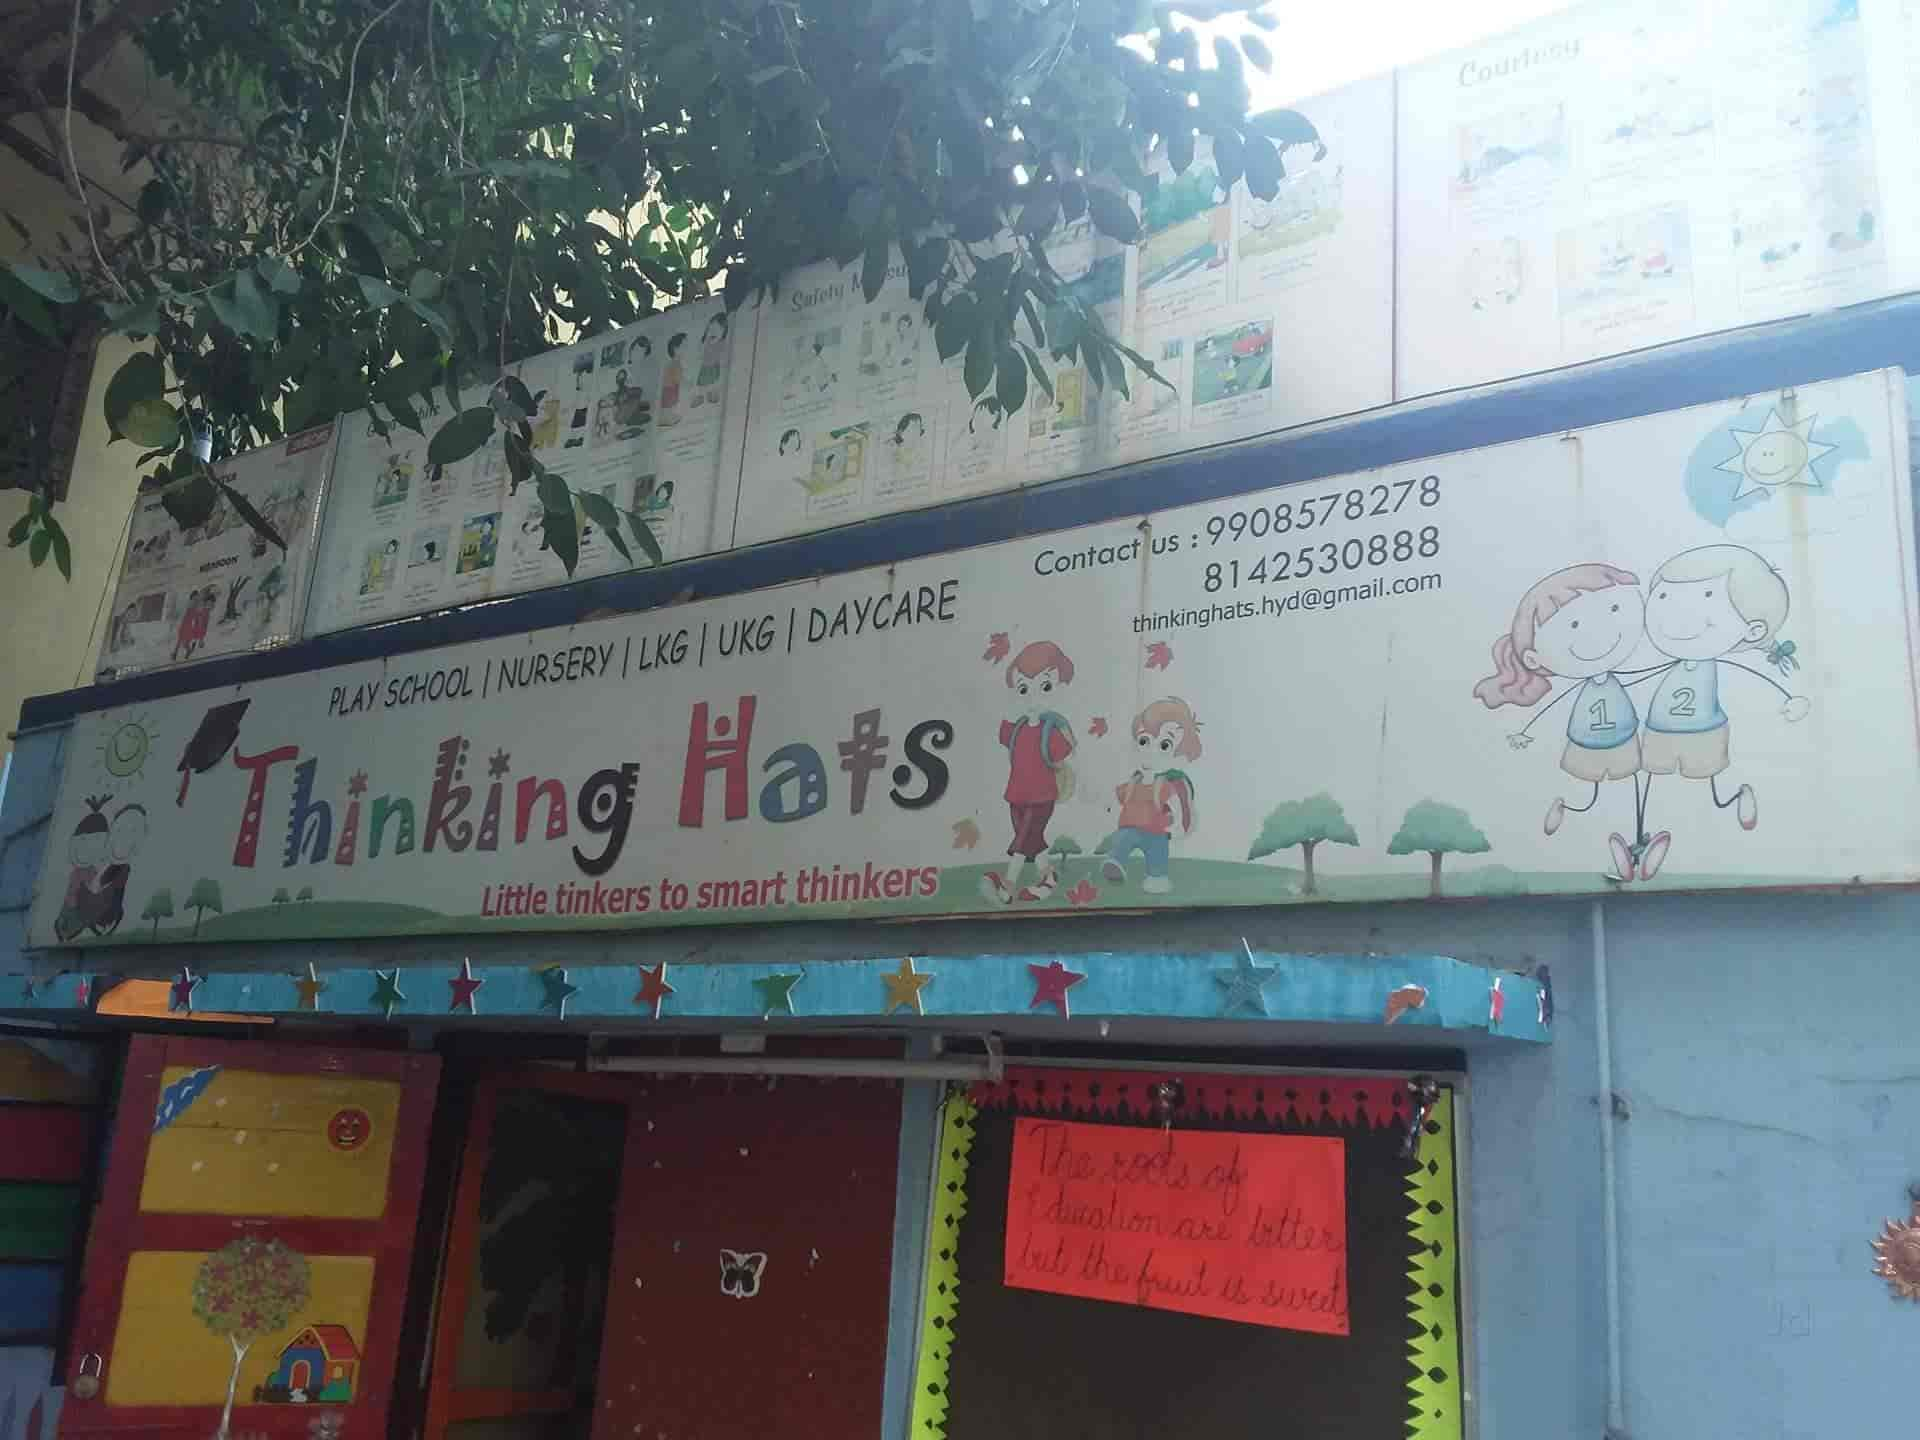 Thinking Hats Photos, Nacharam, Hyderabad- Pictures & Images